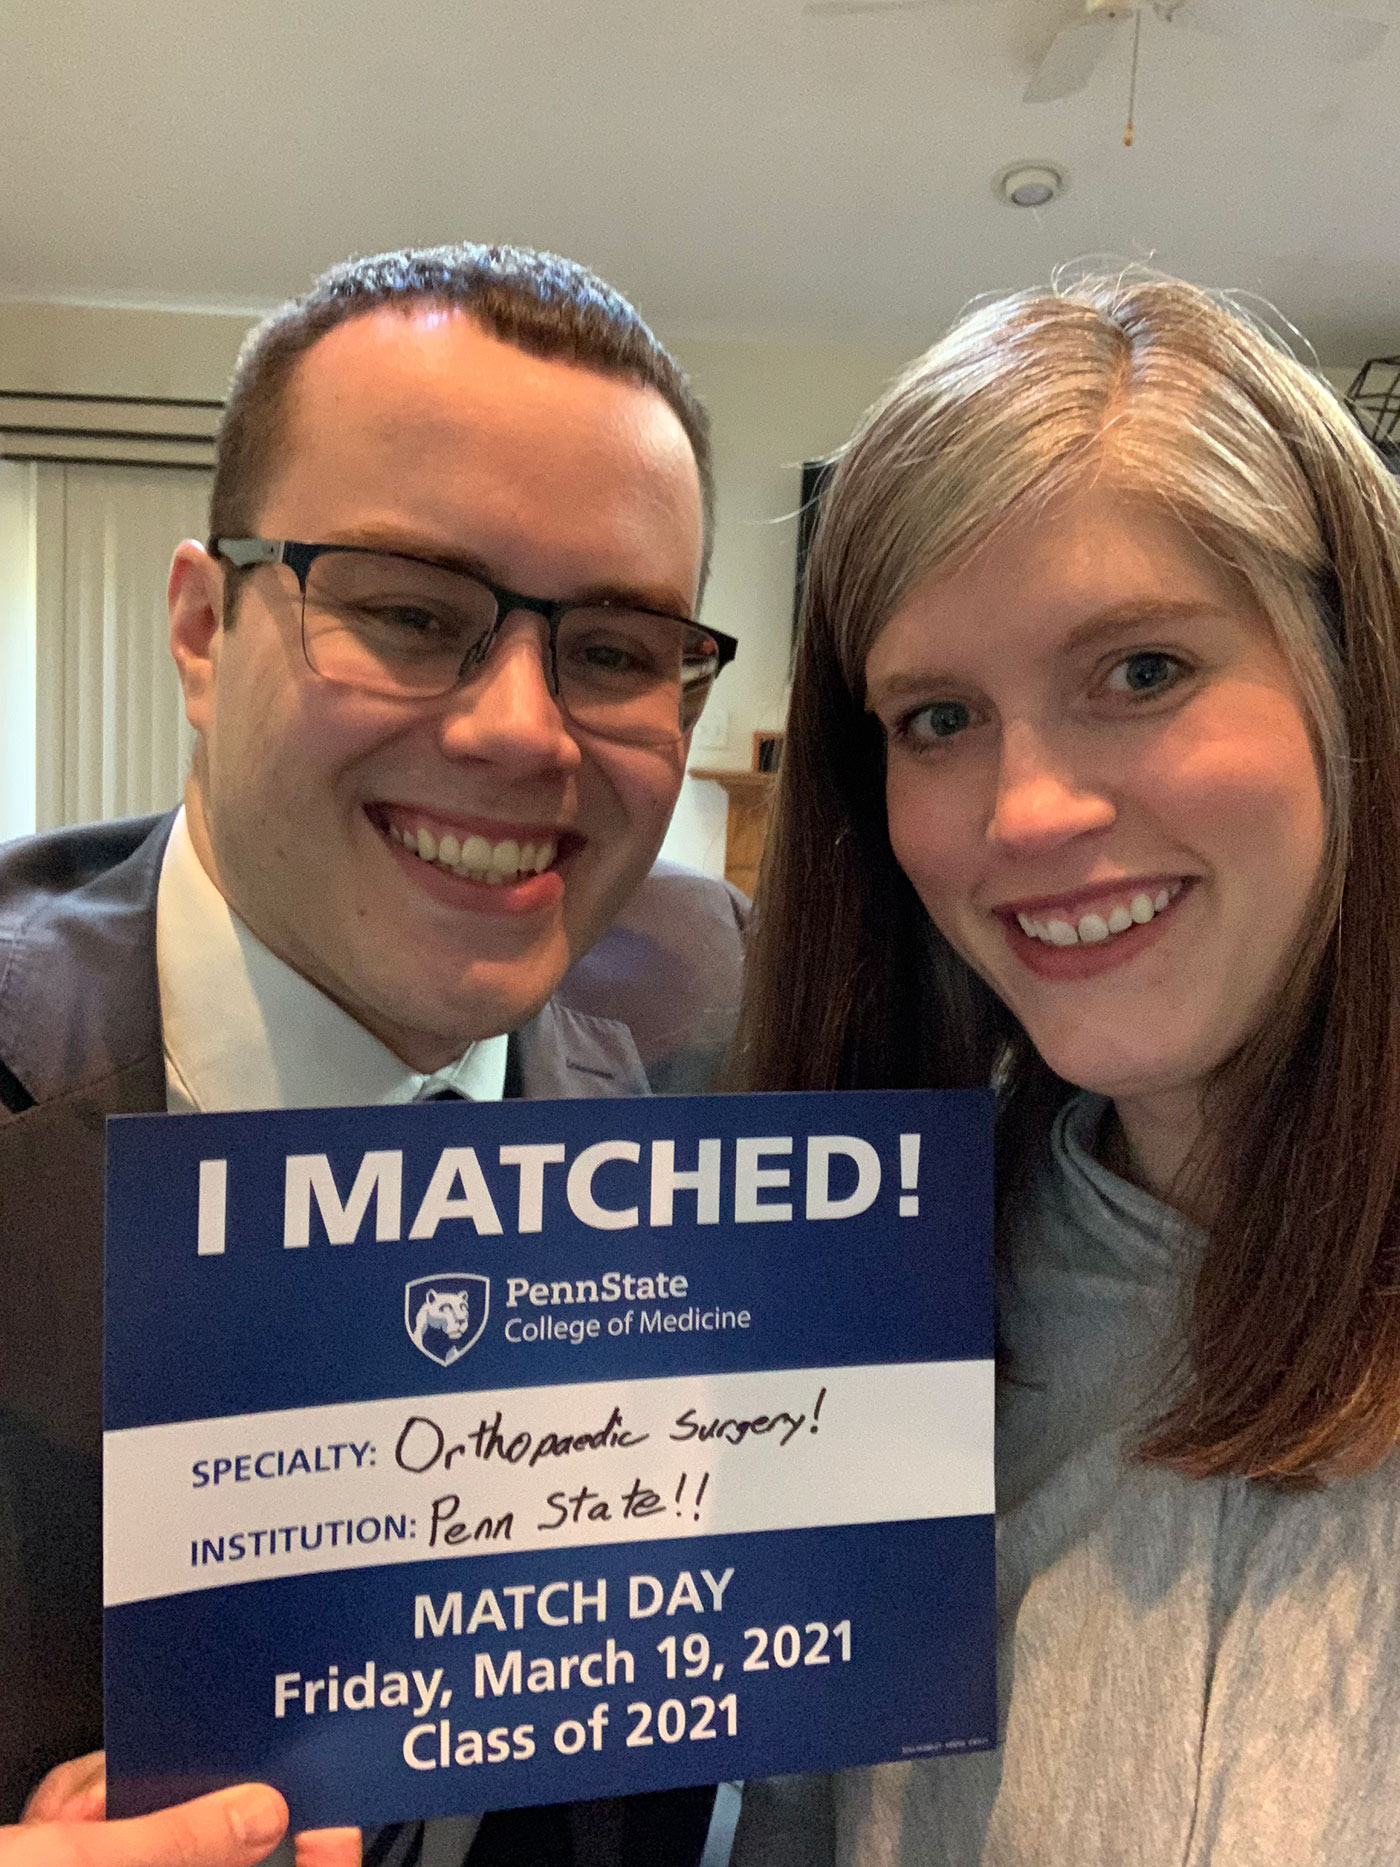 A man and woman hold an I Matched sign for Orthopaedic Surgery at Penn State.